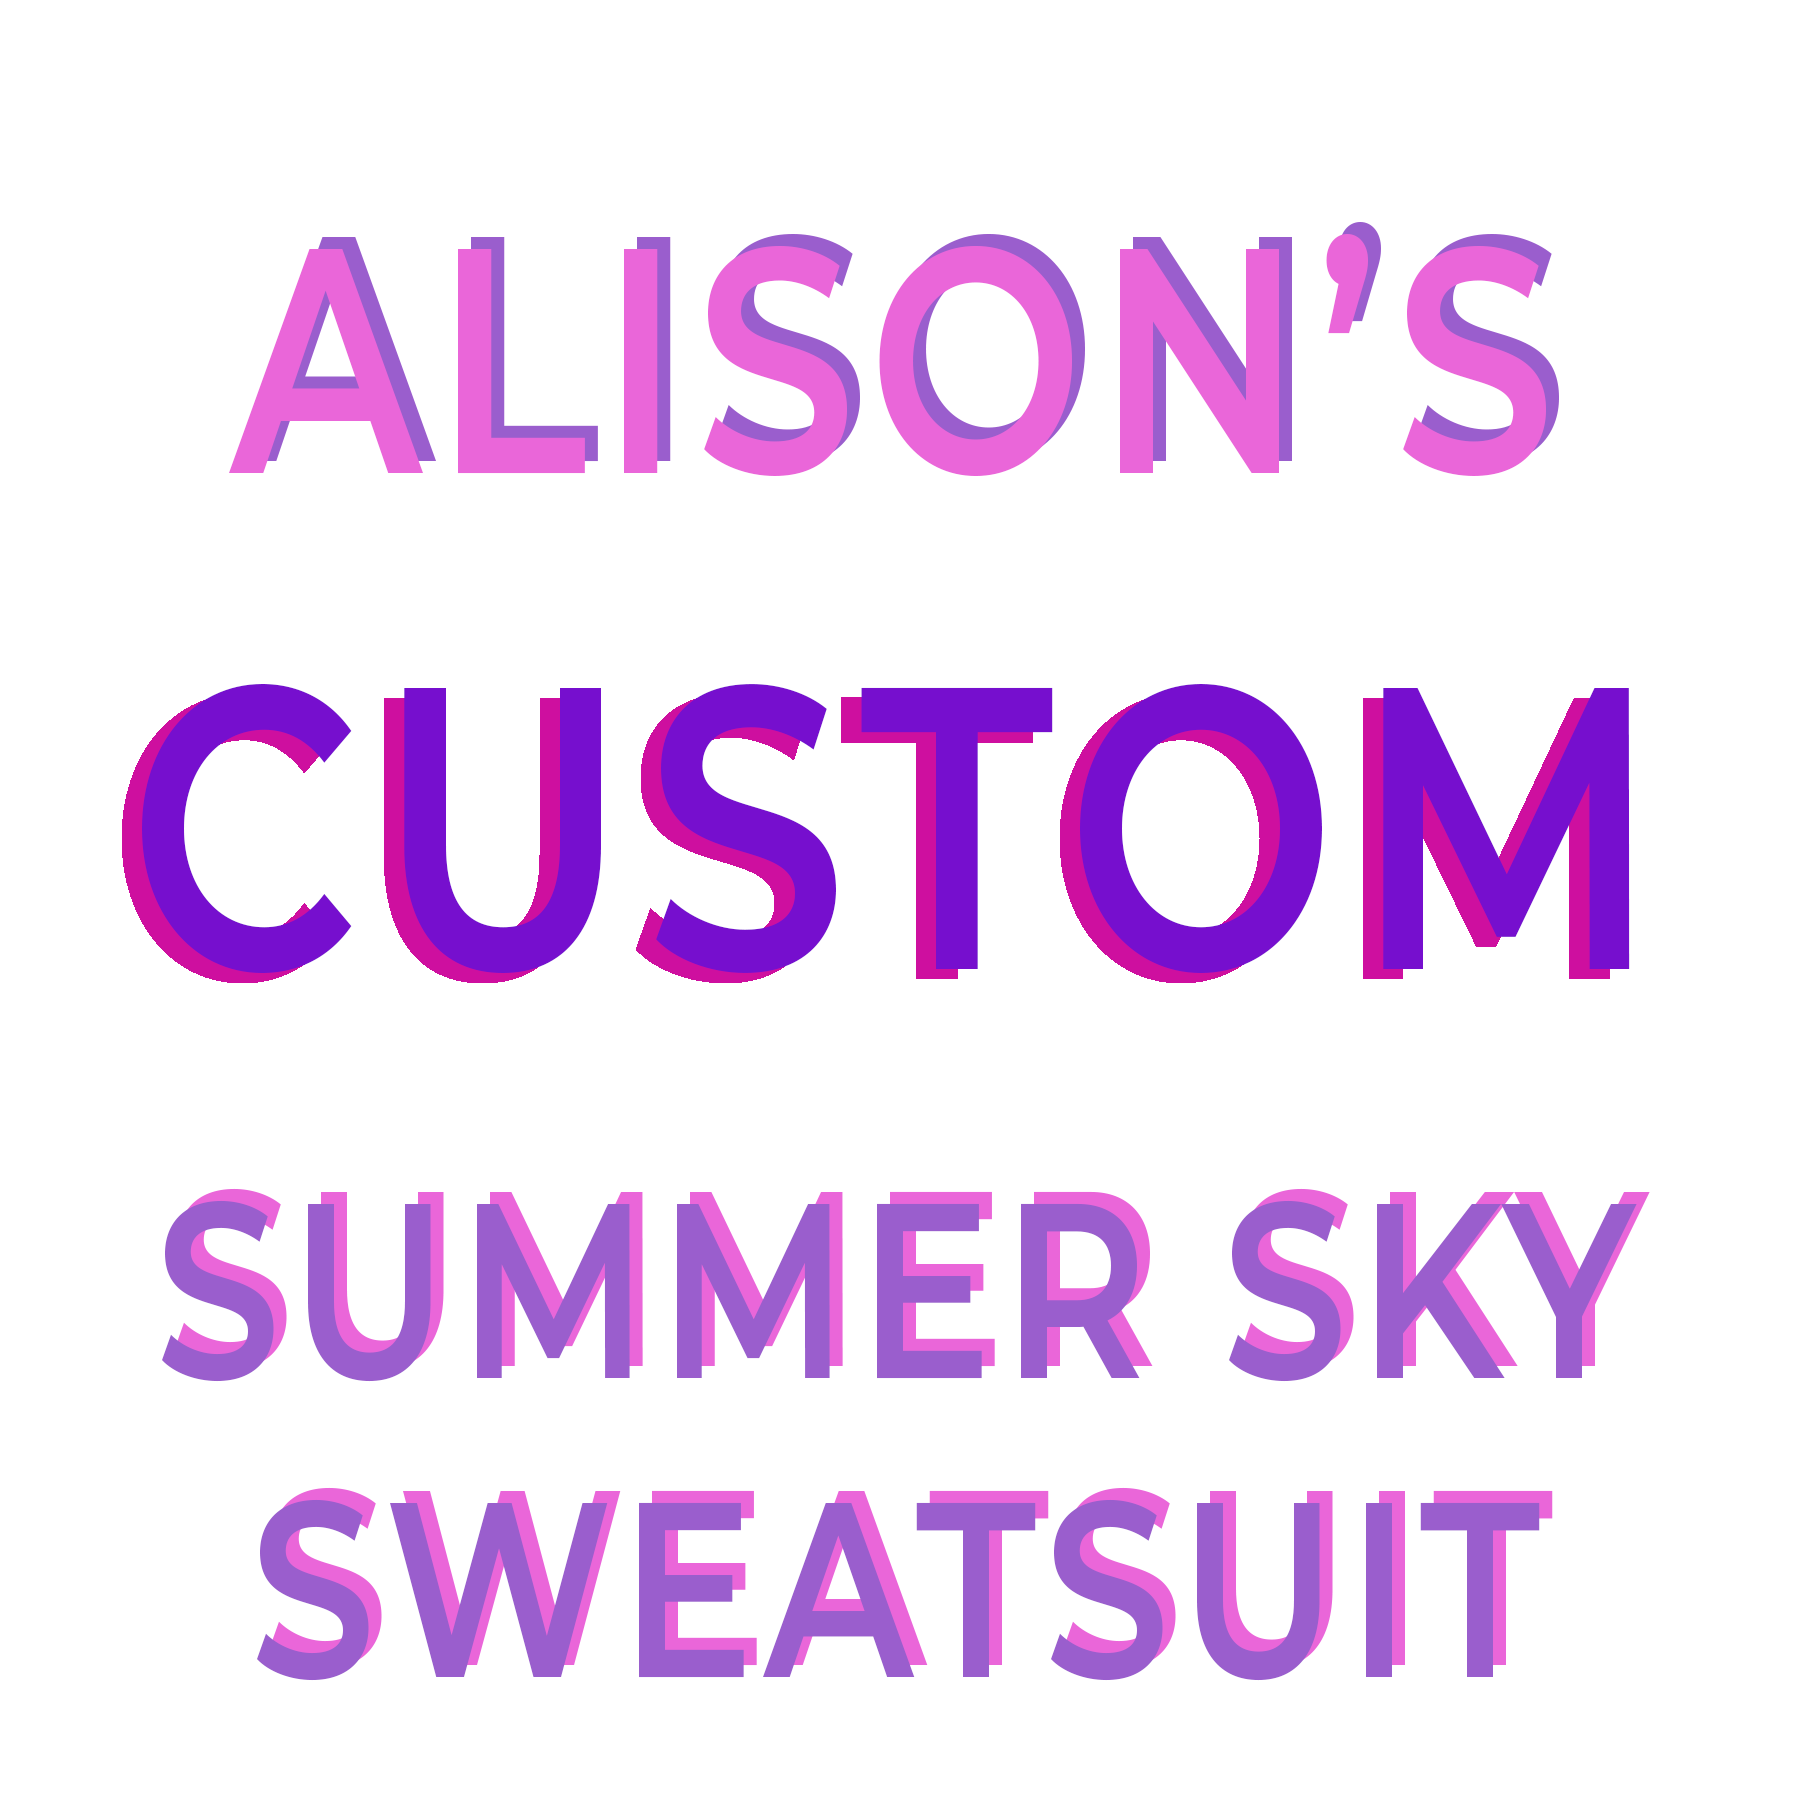 ALISON'S CUSTOM SUMMER SKY SWEATSUIT